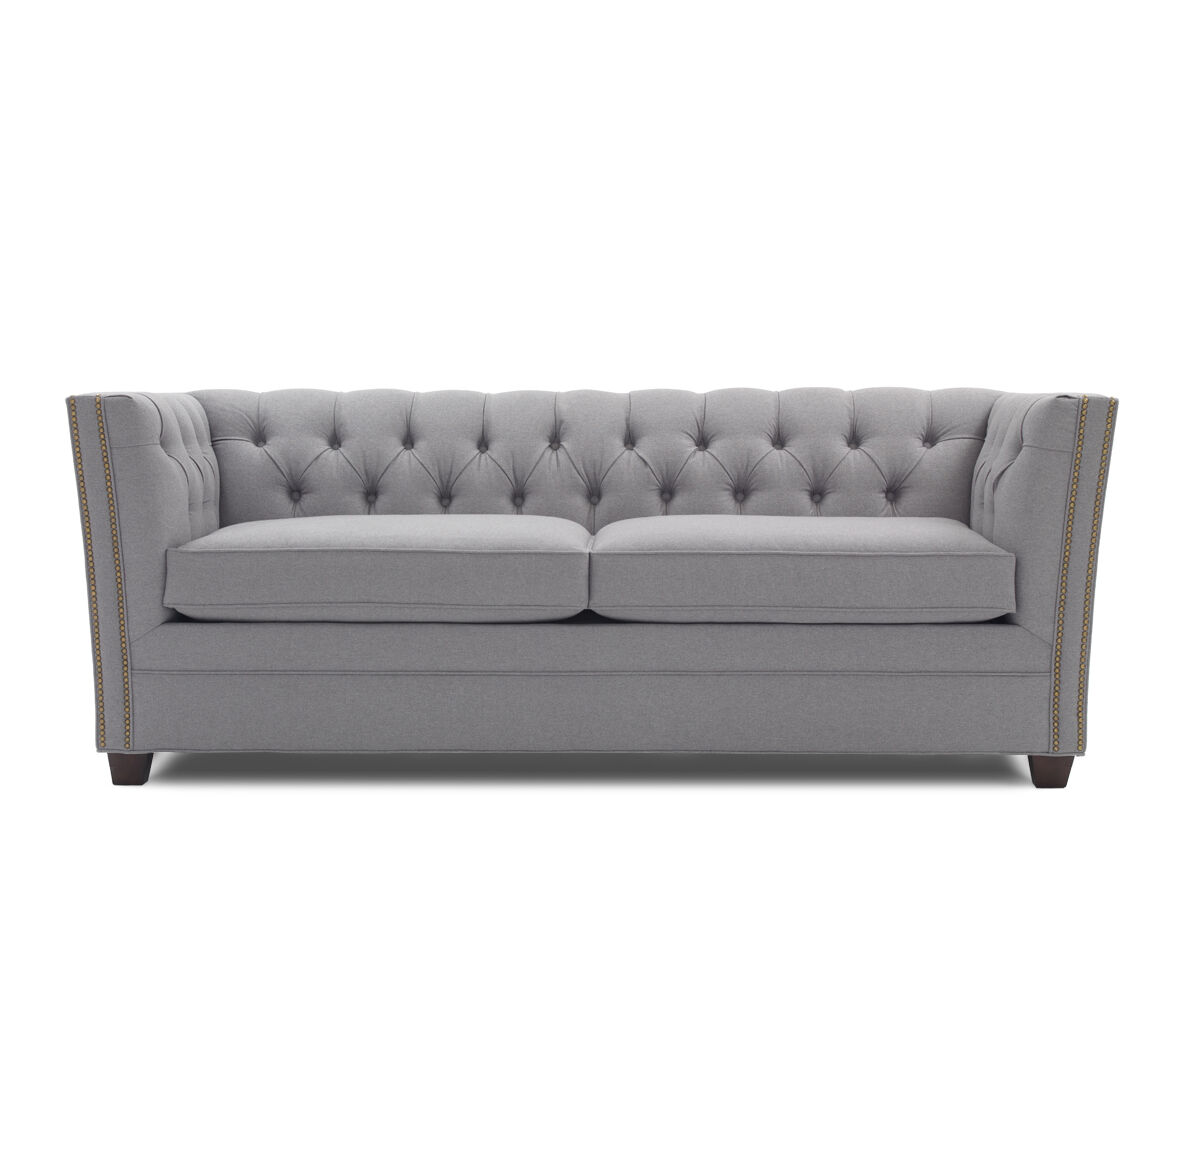 FIONA LUXE QUEEN SLEEPER SOFA, PHIPPS   HEATHER, Hi Res